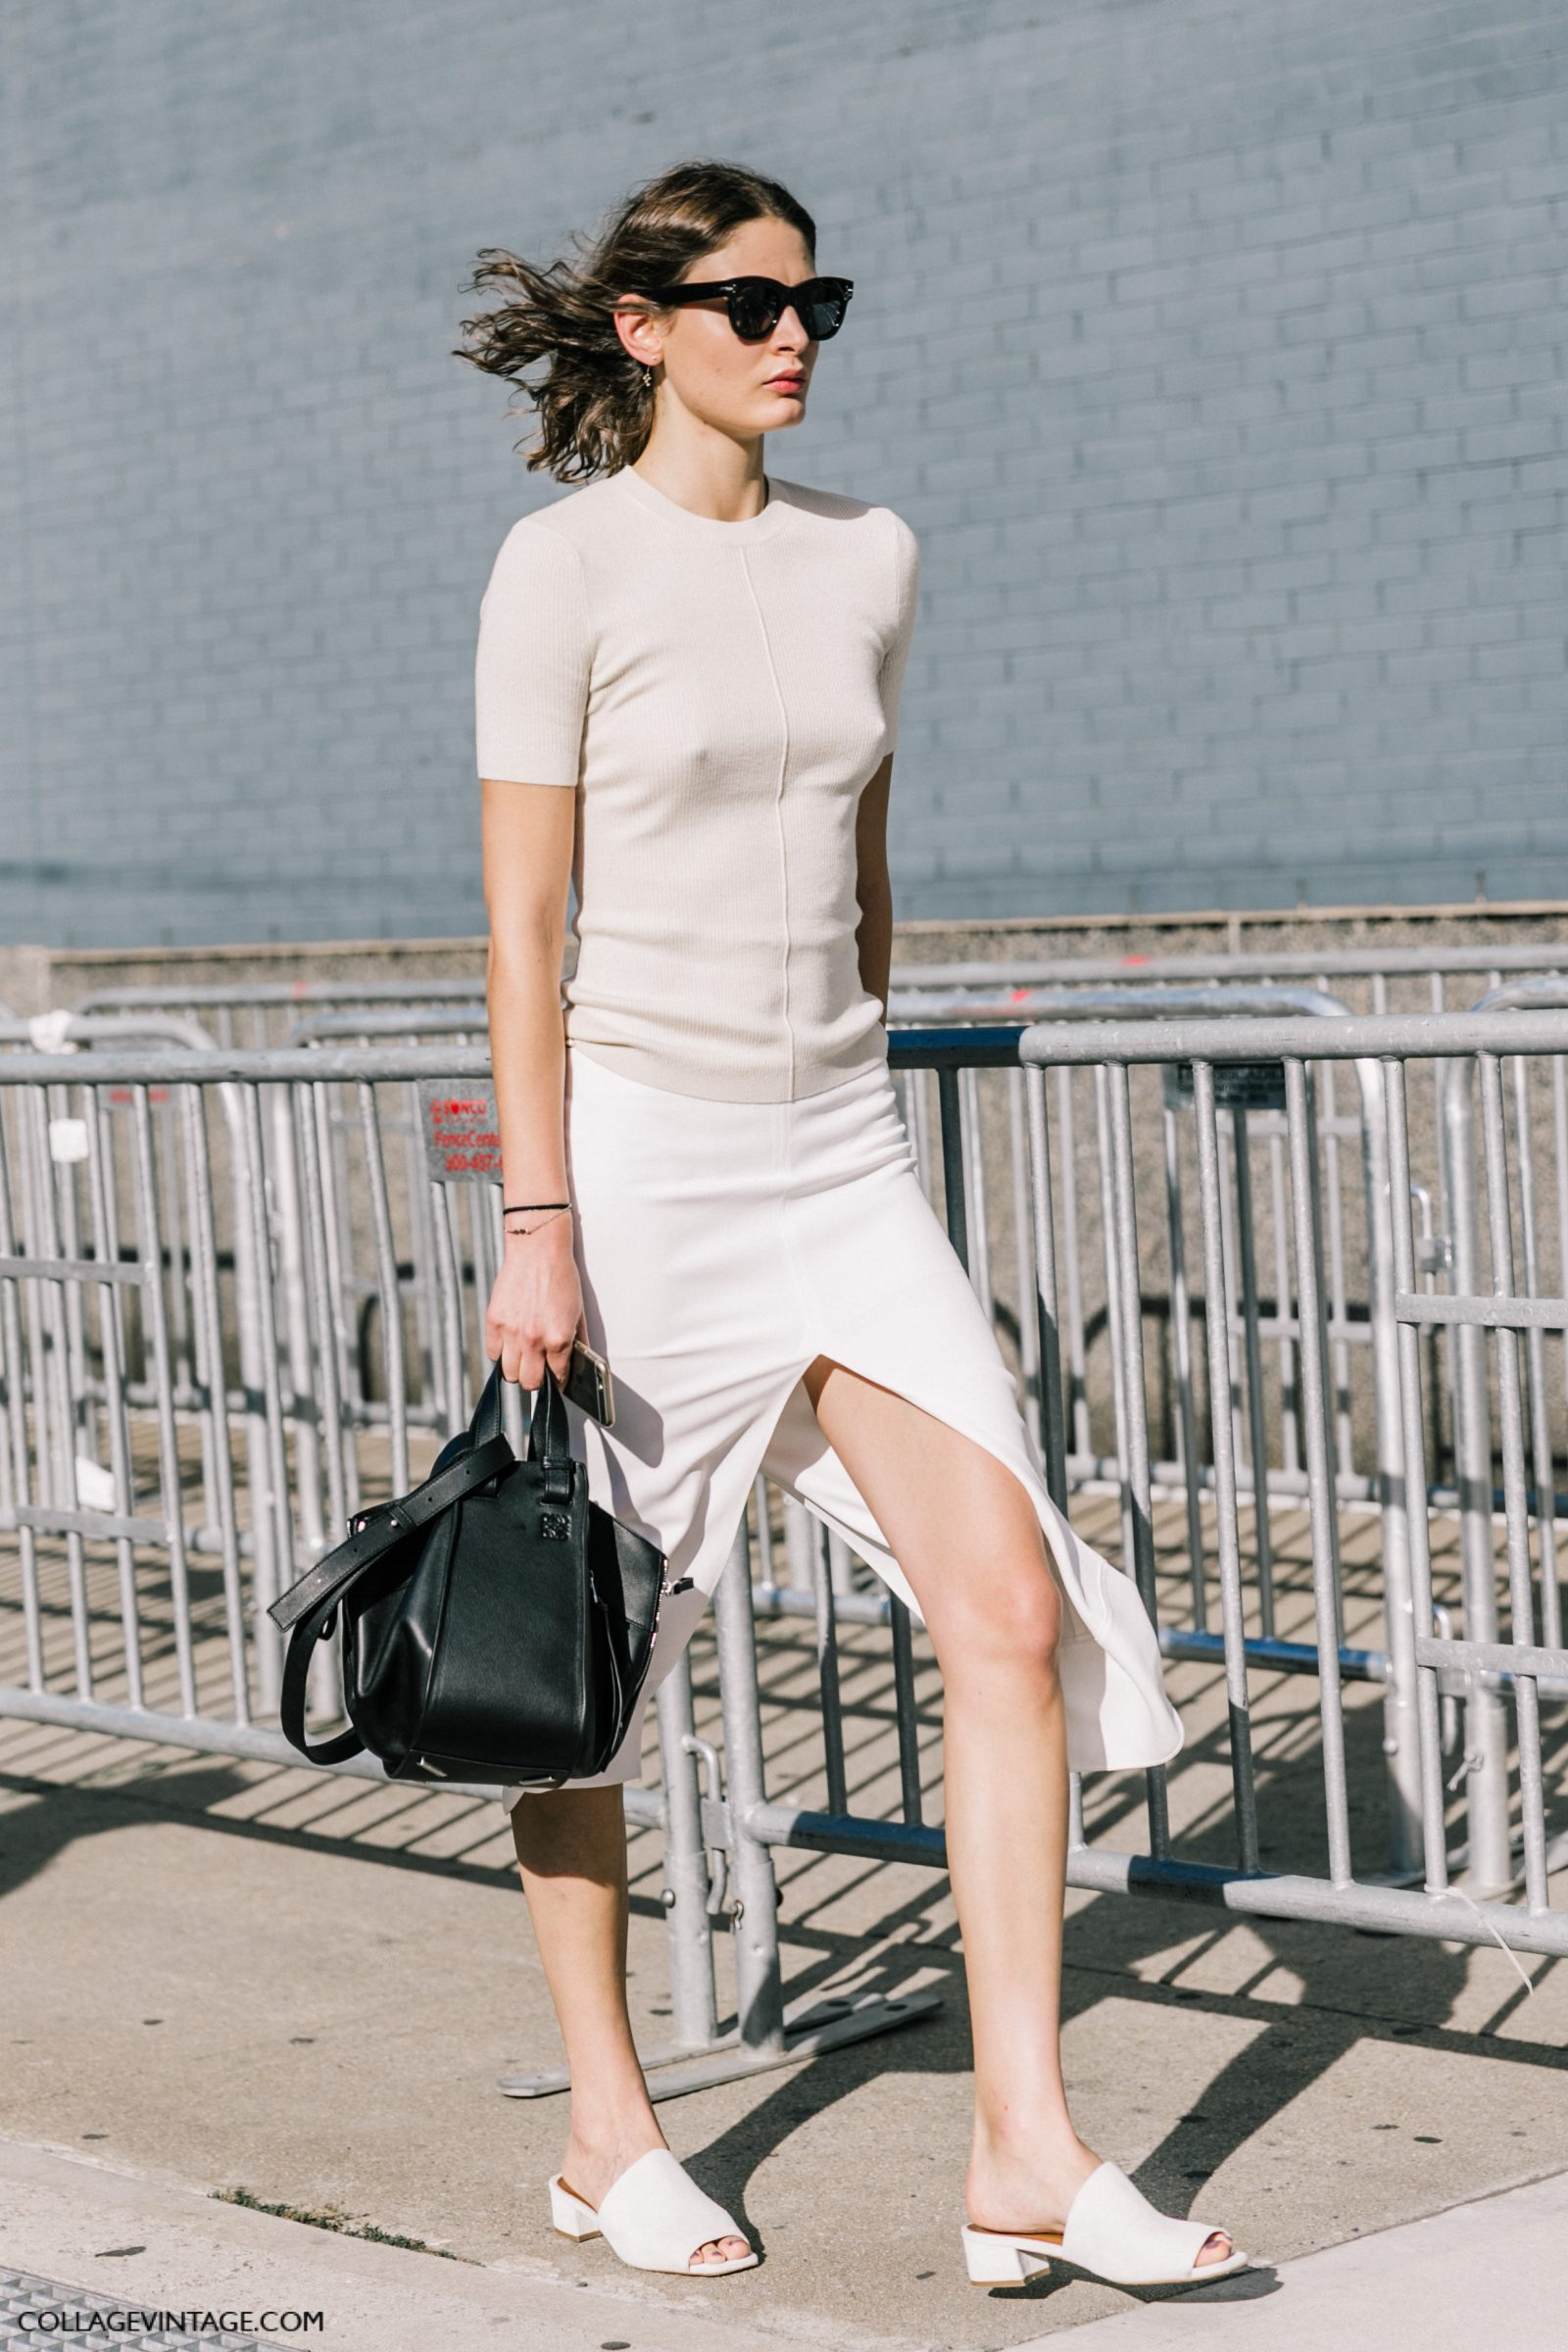 nyfw-new_york_fashion_week_ss17-street_style-outfits-collage_vintage-vintage-atuzarra-43